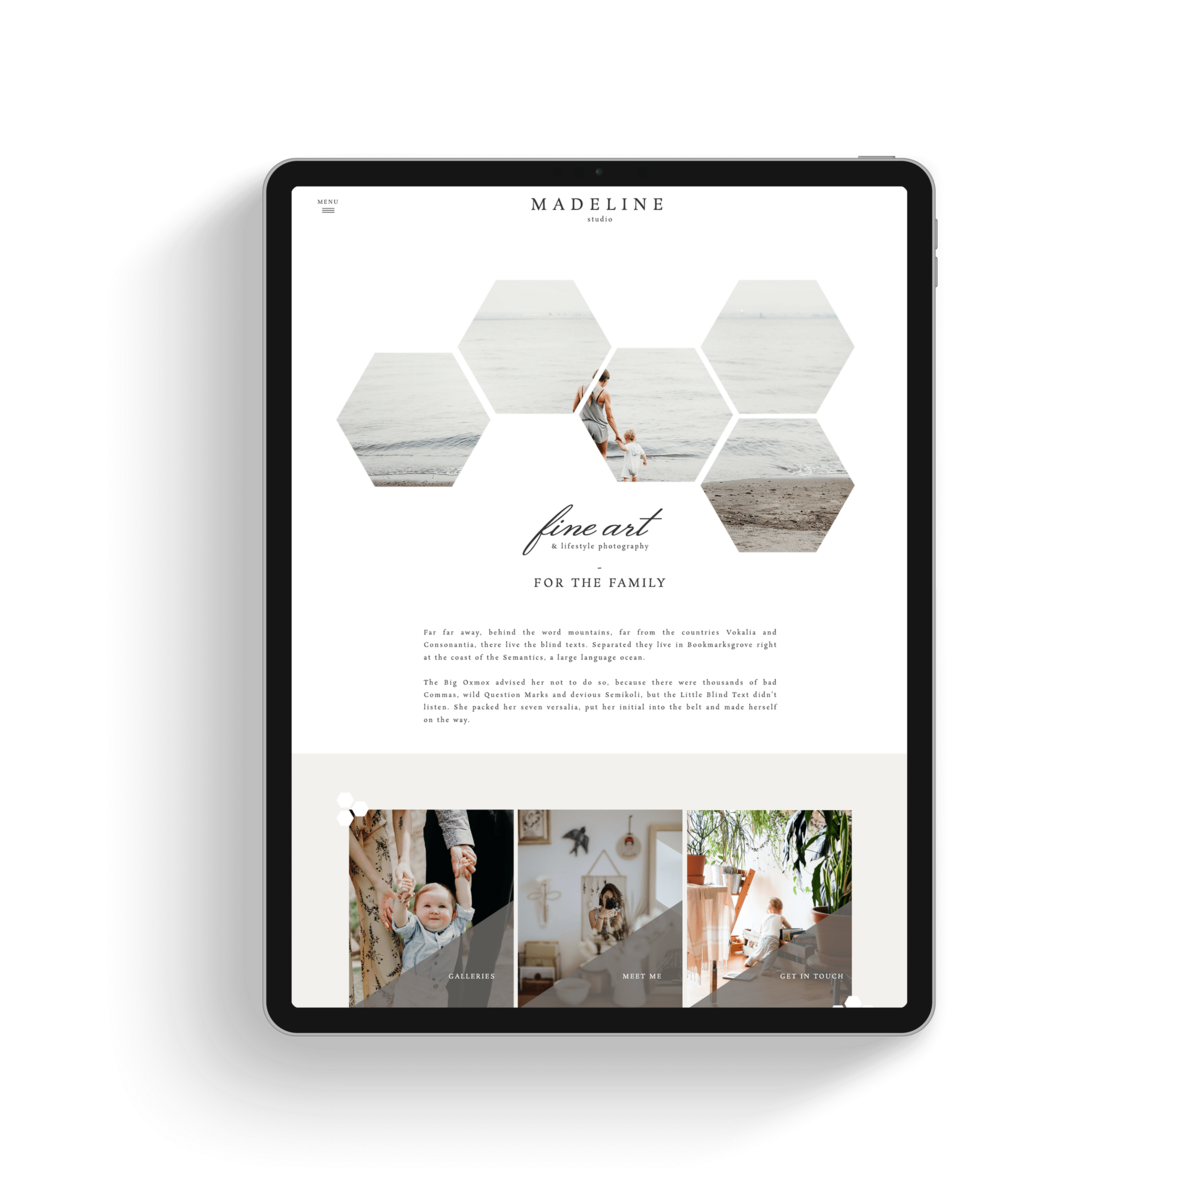 Madeline-Showit-Website-Template